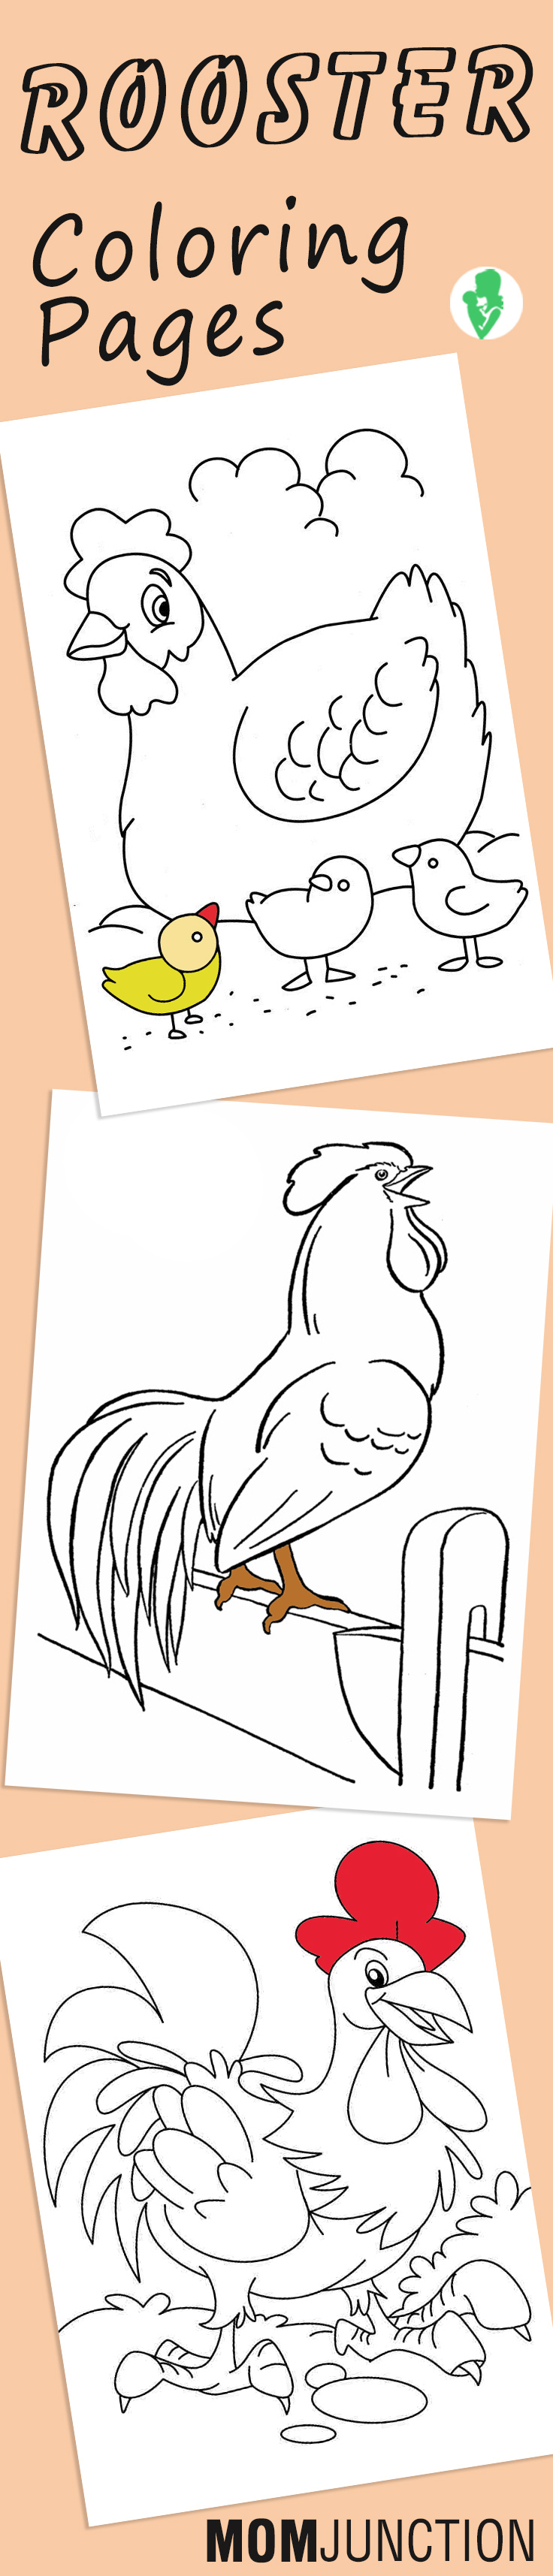 Top 10 Free Printable Rooster Coloring Pages Online | Free printable ...